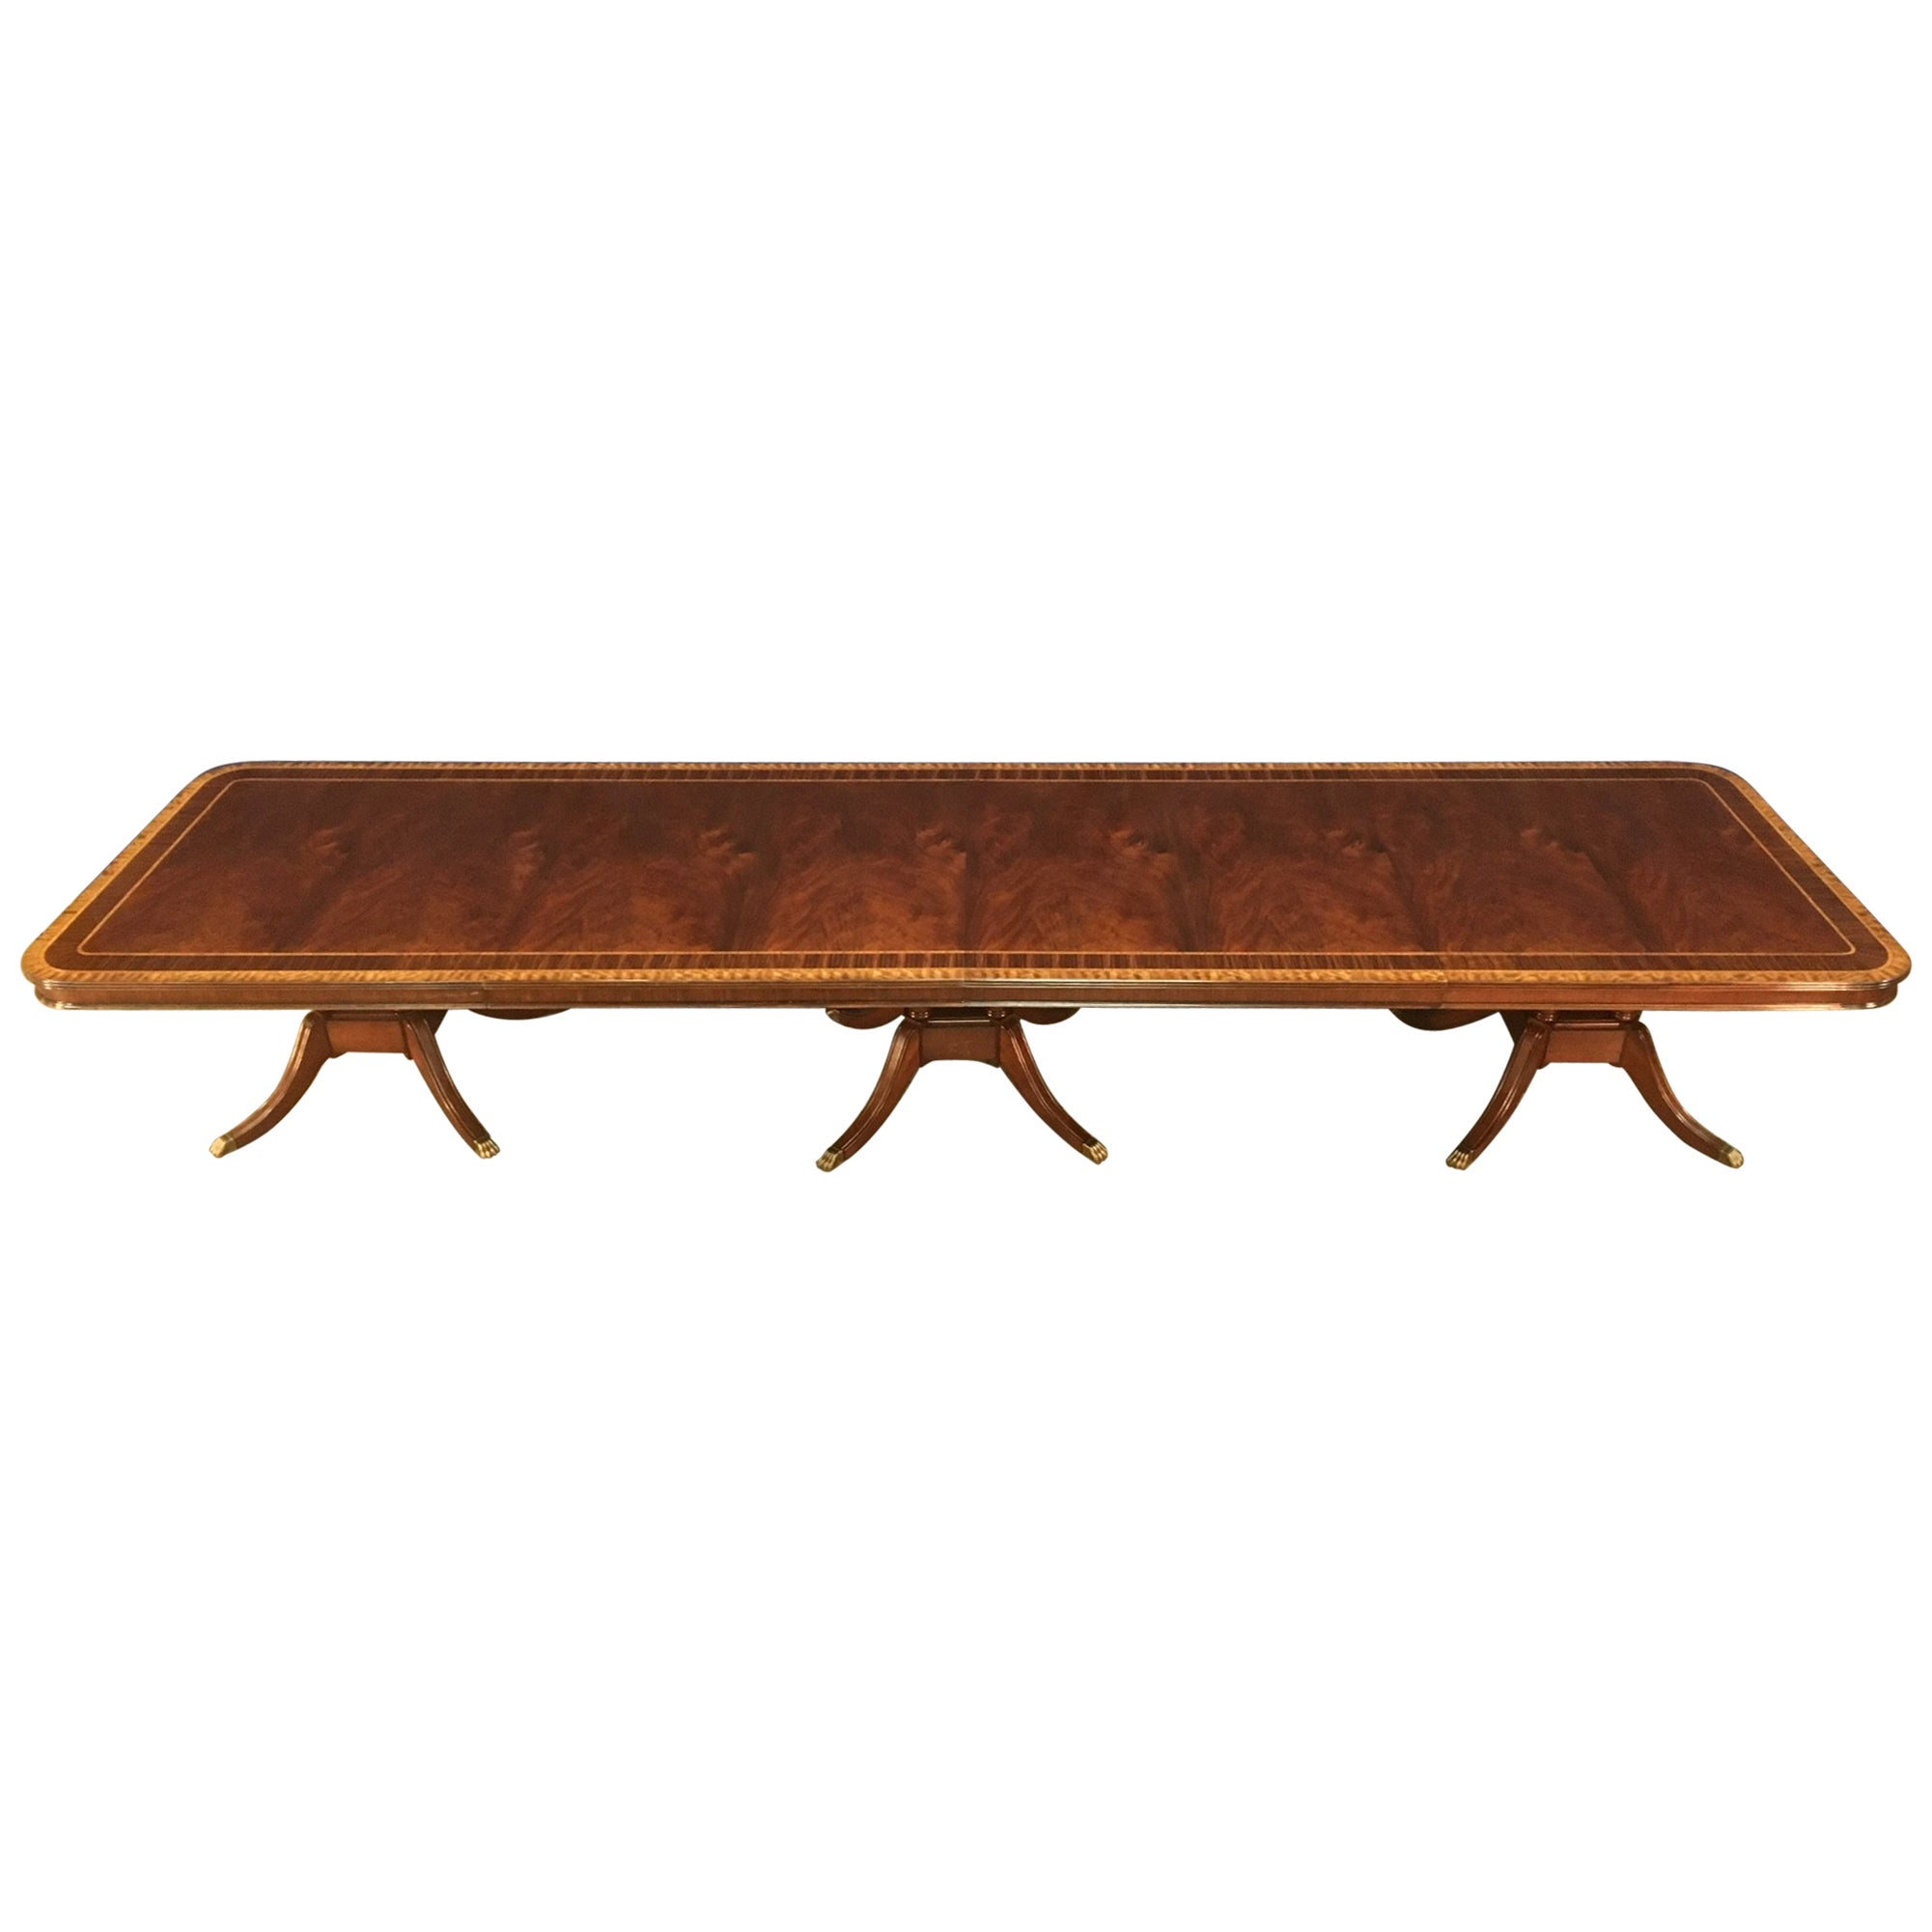 Custom Large 16 ft. Mahogany Banquet Dining Table by Leighton Hall